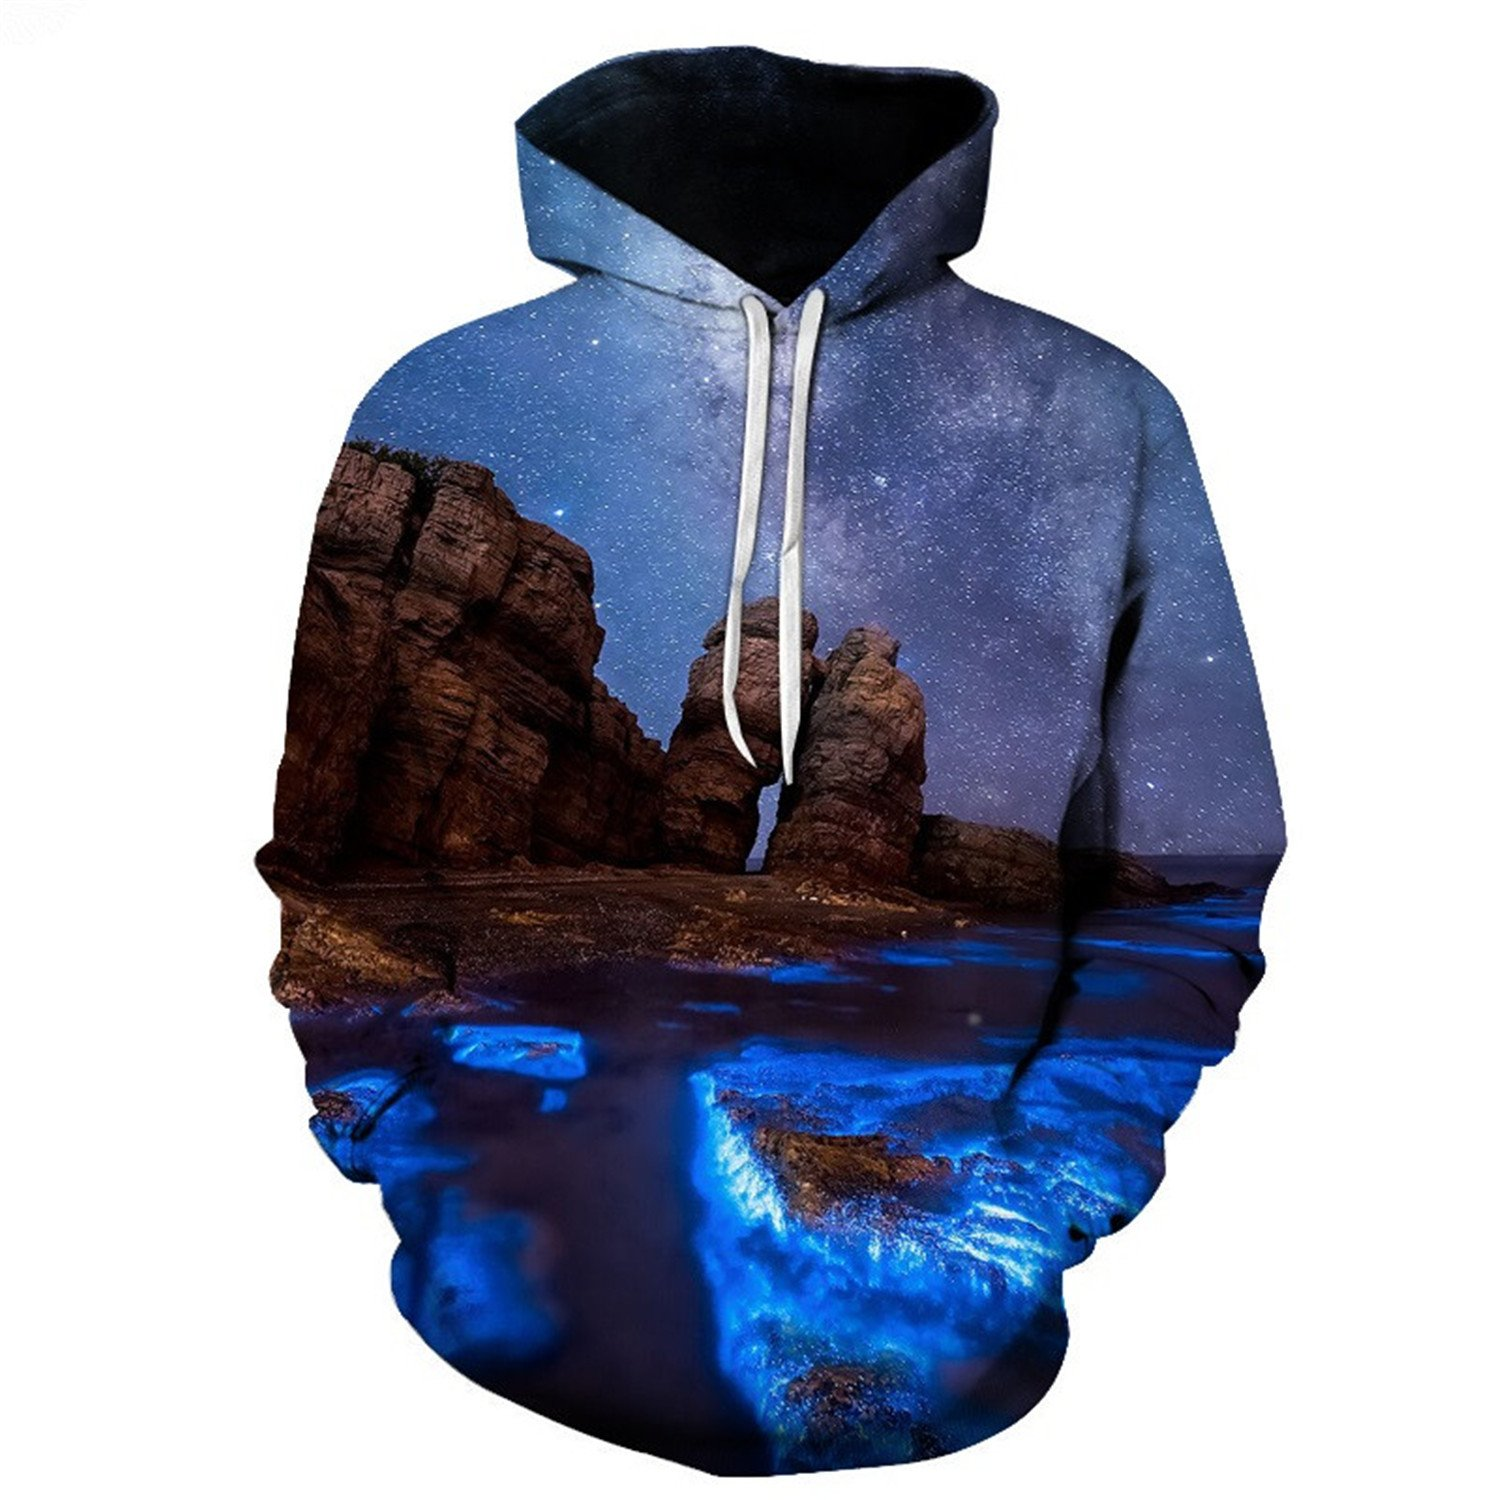 Matterin Christiao Funny Printed Landscape Hoodies Men Women Sweatshirts Loose Pocket Jackets 3D Pullover Hooded Outwear